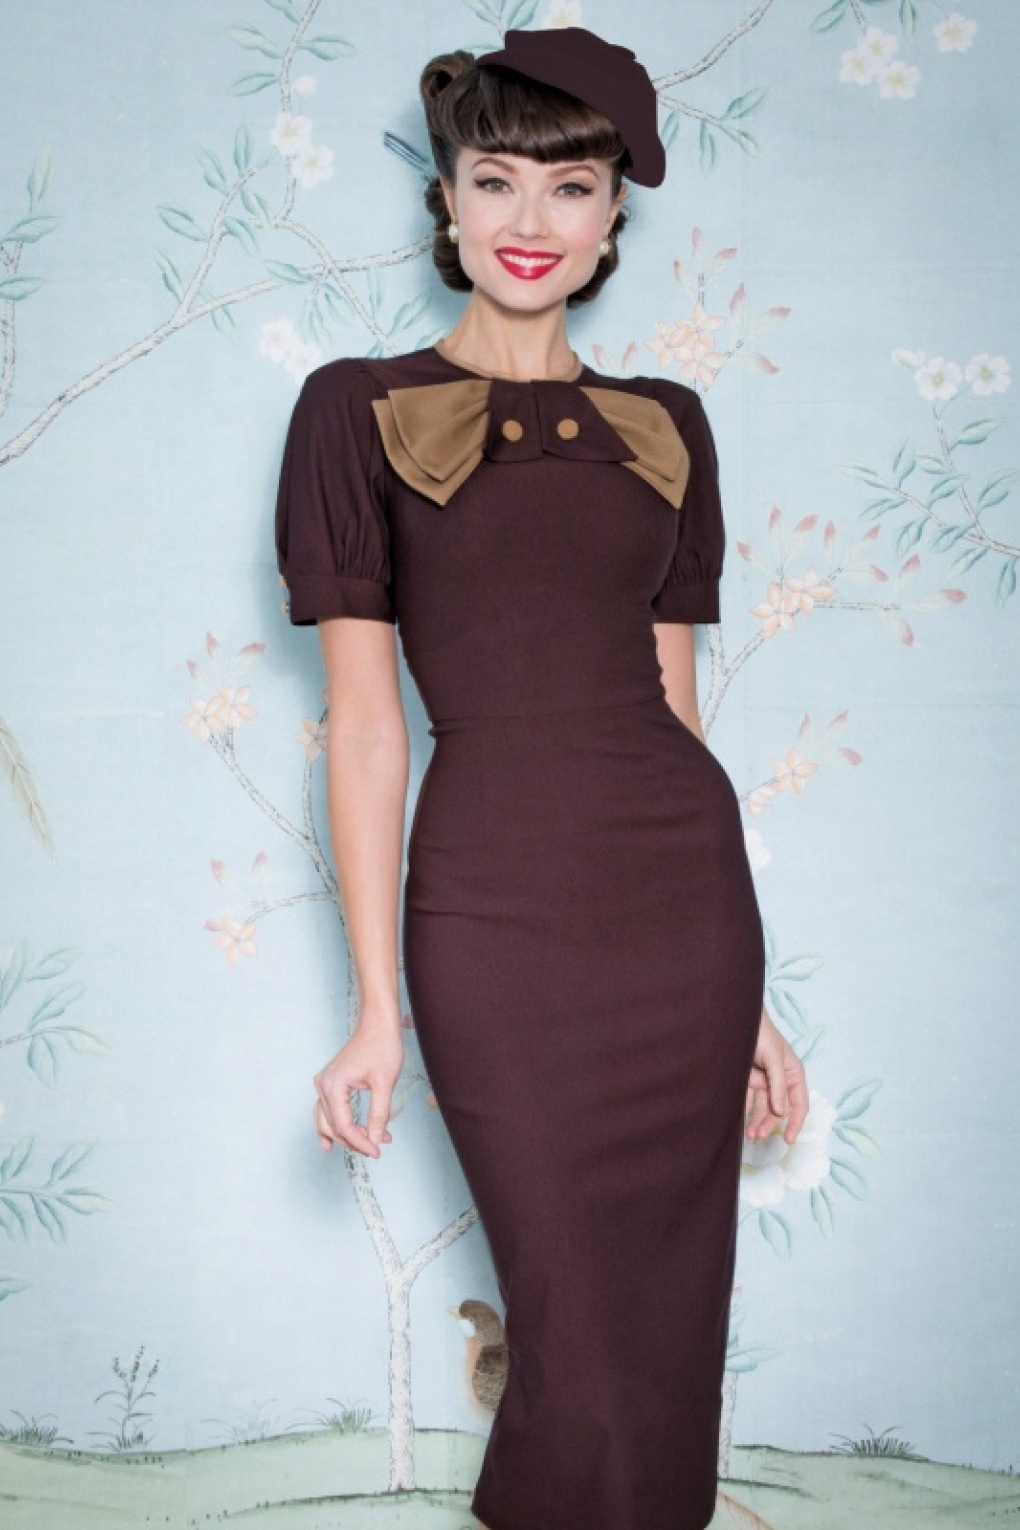 500 Vintage Style Dresses for Sale | Vintage Inspired Dresses Penny Pencil Dress in Chocolate £107.70 AT vintagedancer.com